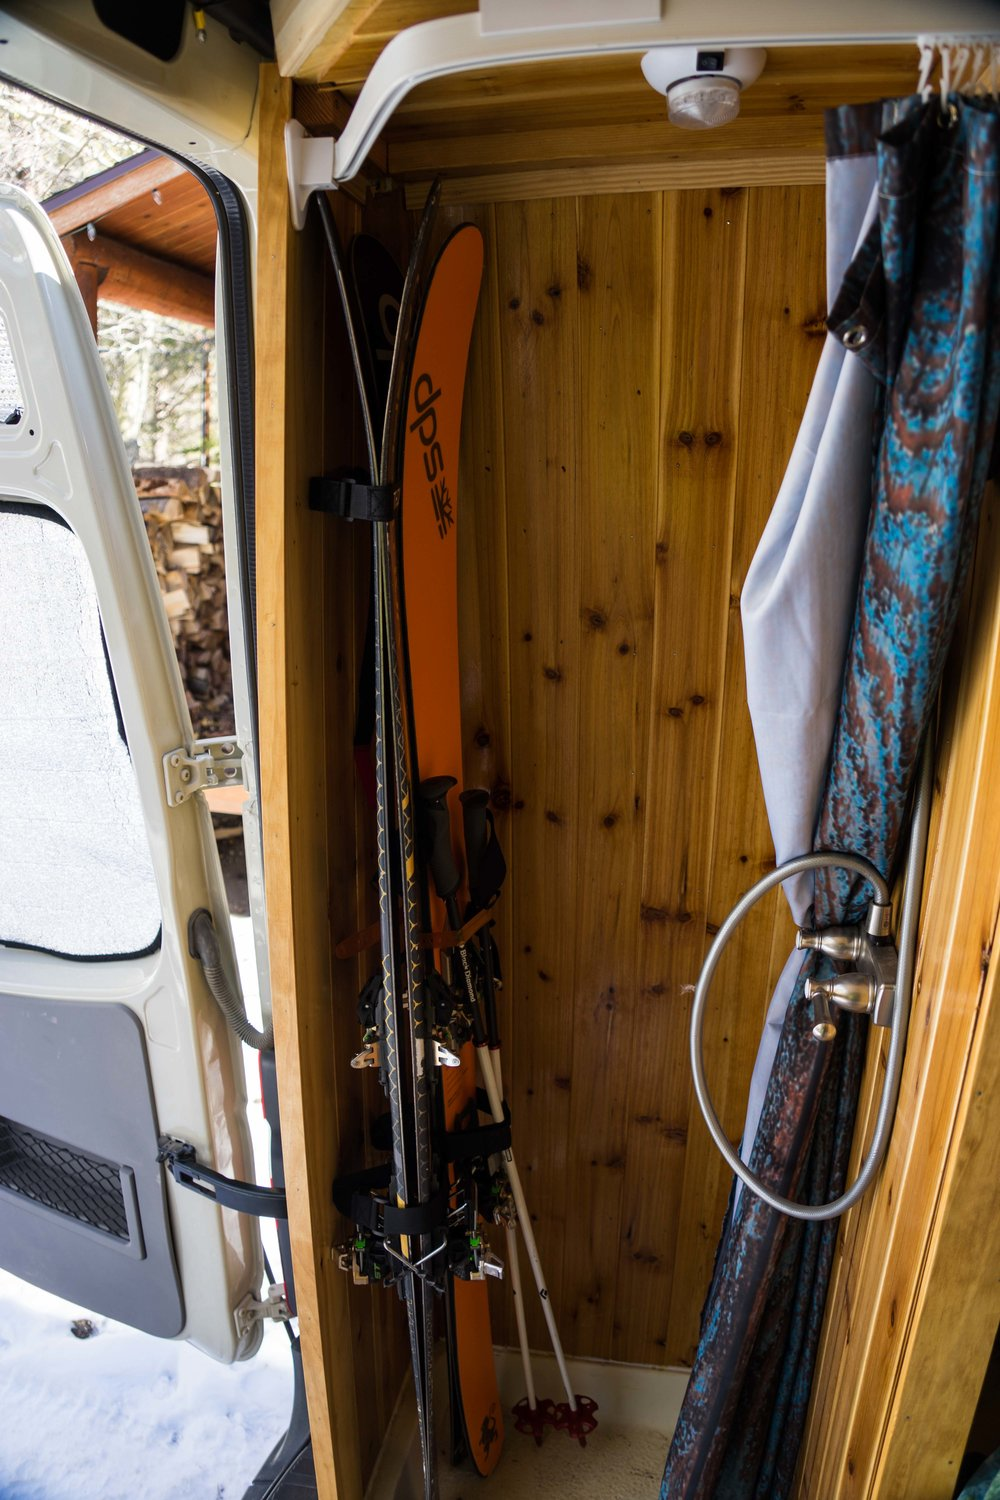 The Shower And Ski Locker Velcro Straps Hold Down Skis